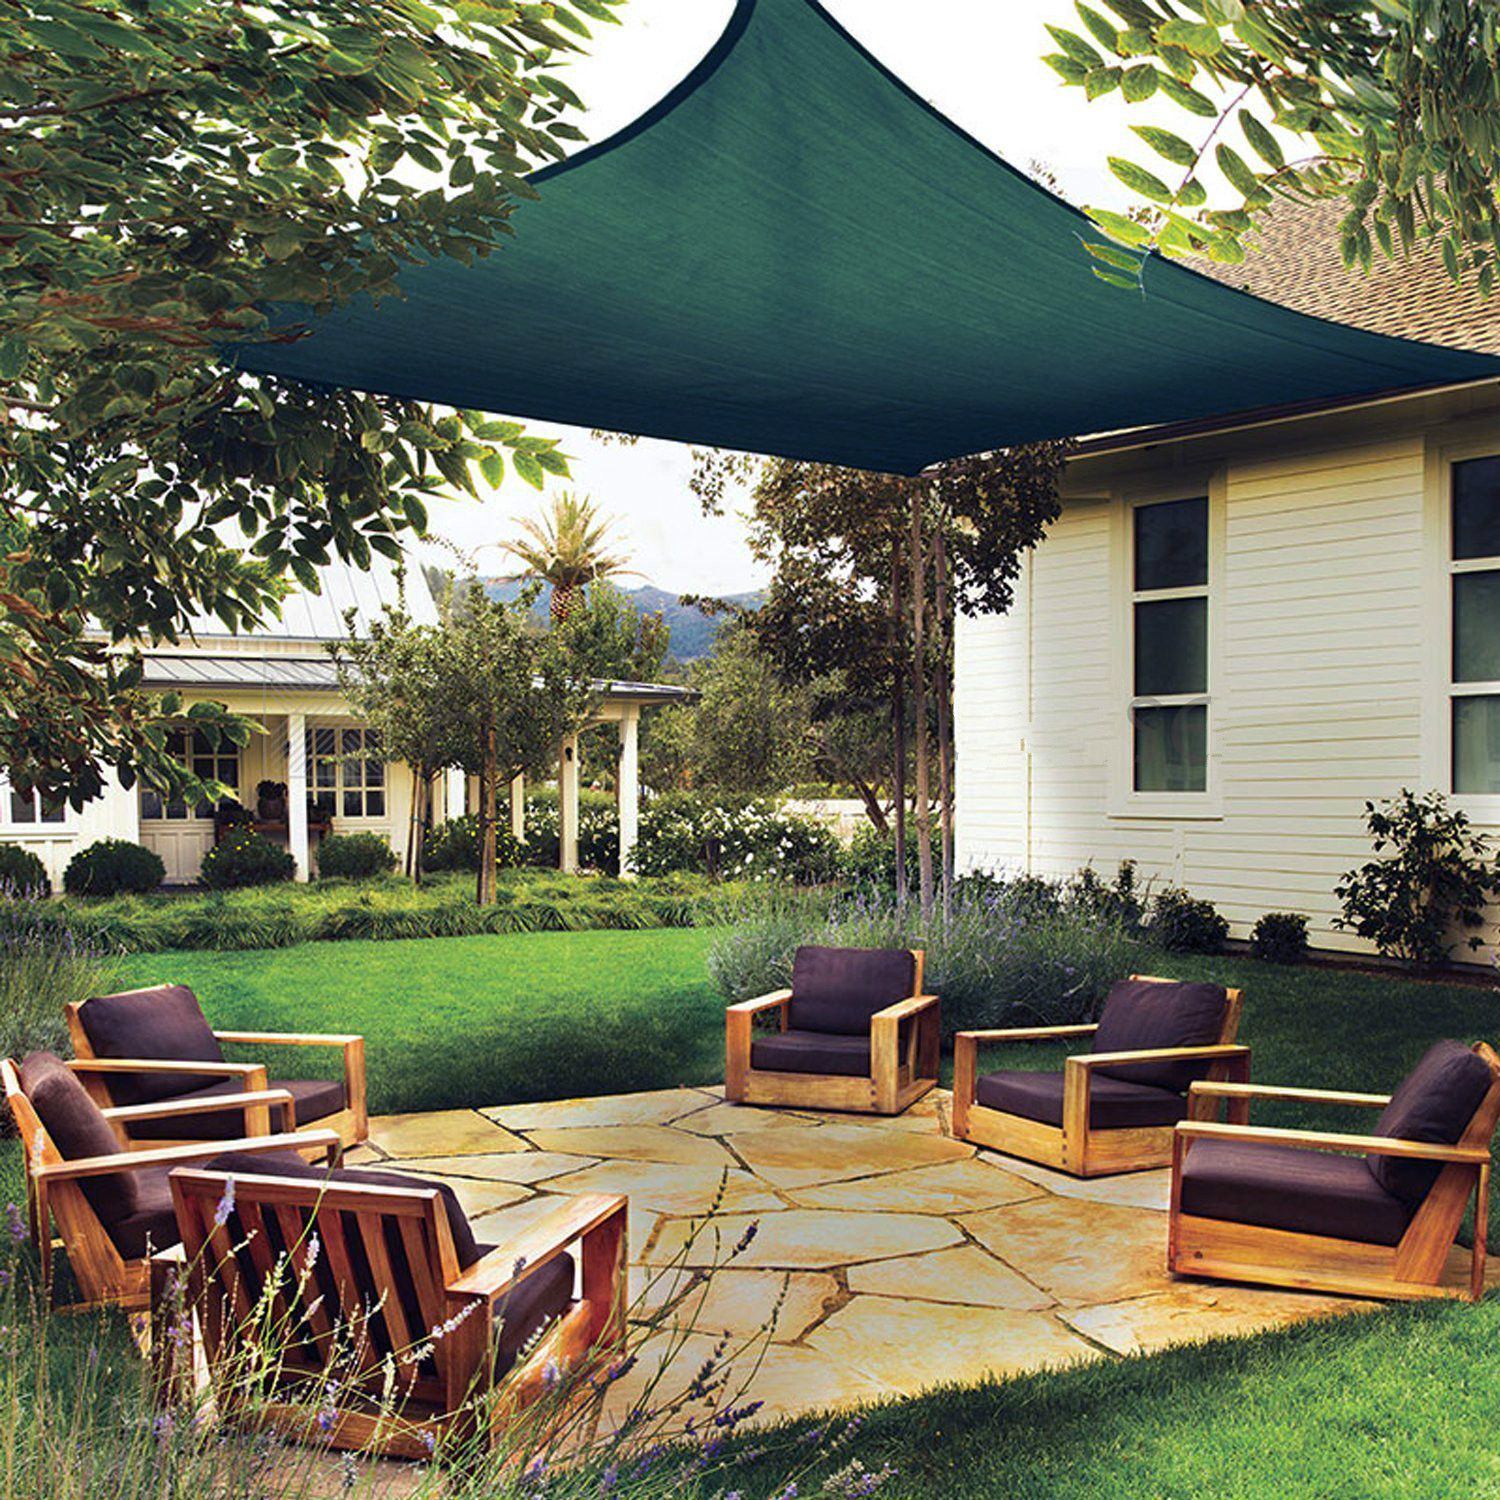 Cheap Canopy Patio Cover Buy Quality Patio Canopy Covers Directly